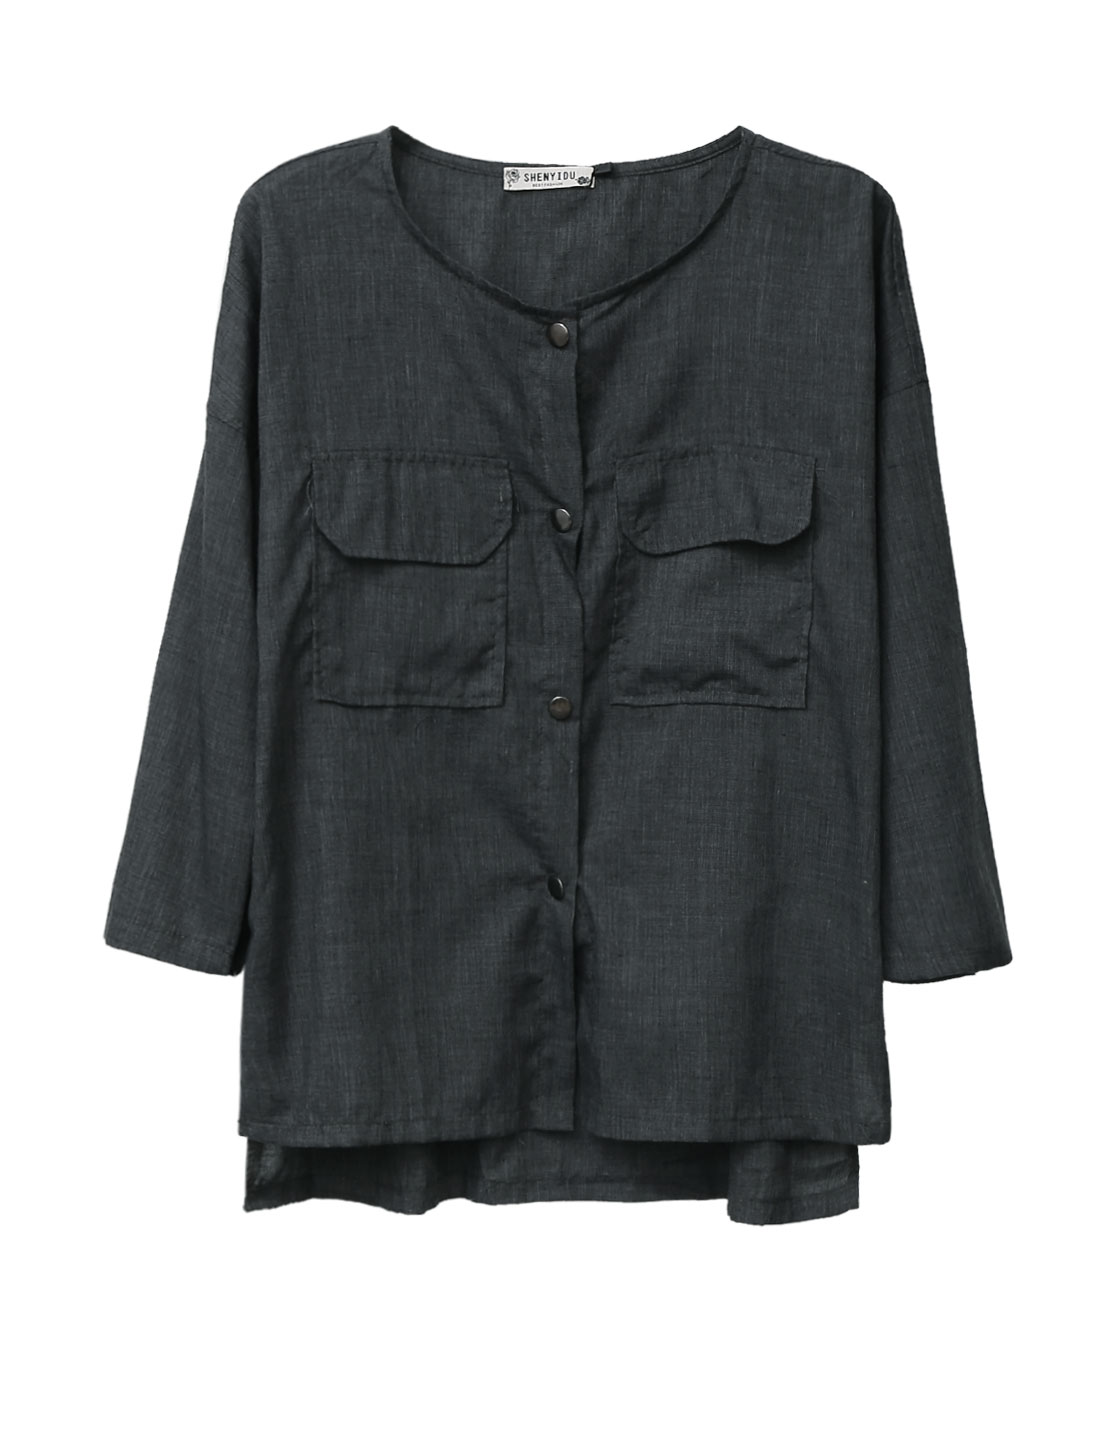 Lady Single Breasted Two Flap Pockets Front Casual Shirt Dark Gray S